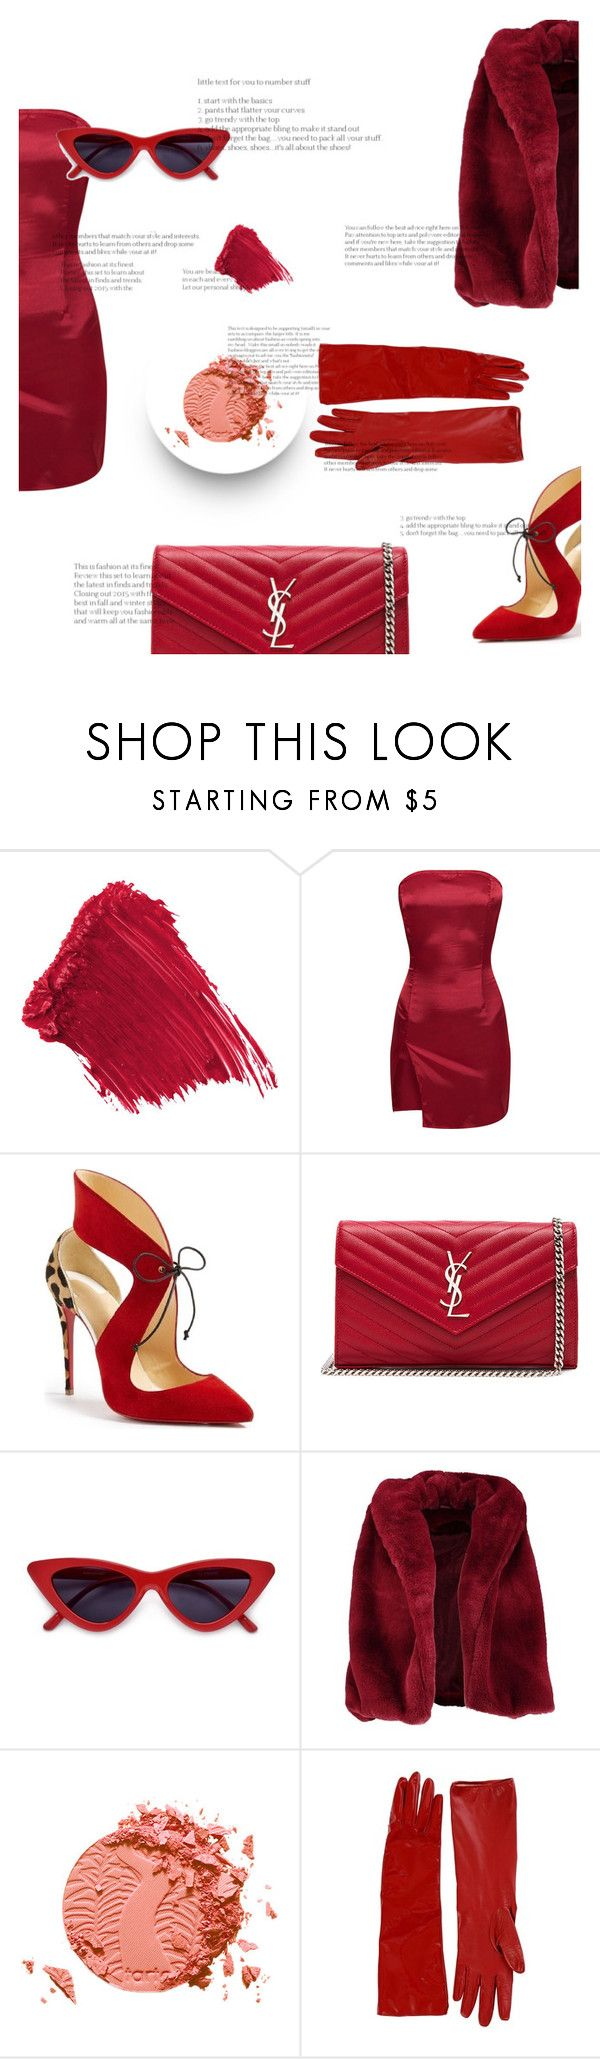 """""""Untitled #223"""" by robyscognamiglio ❤ liked on Polyvore featuring Christian Louboutin, Yves Saint Laurent, Boohoo, tarte and Alessandra Rich"""